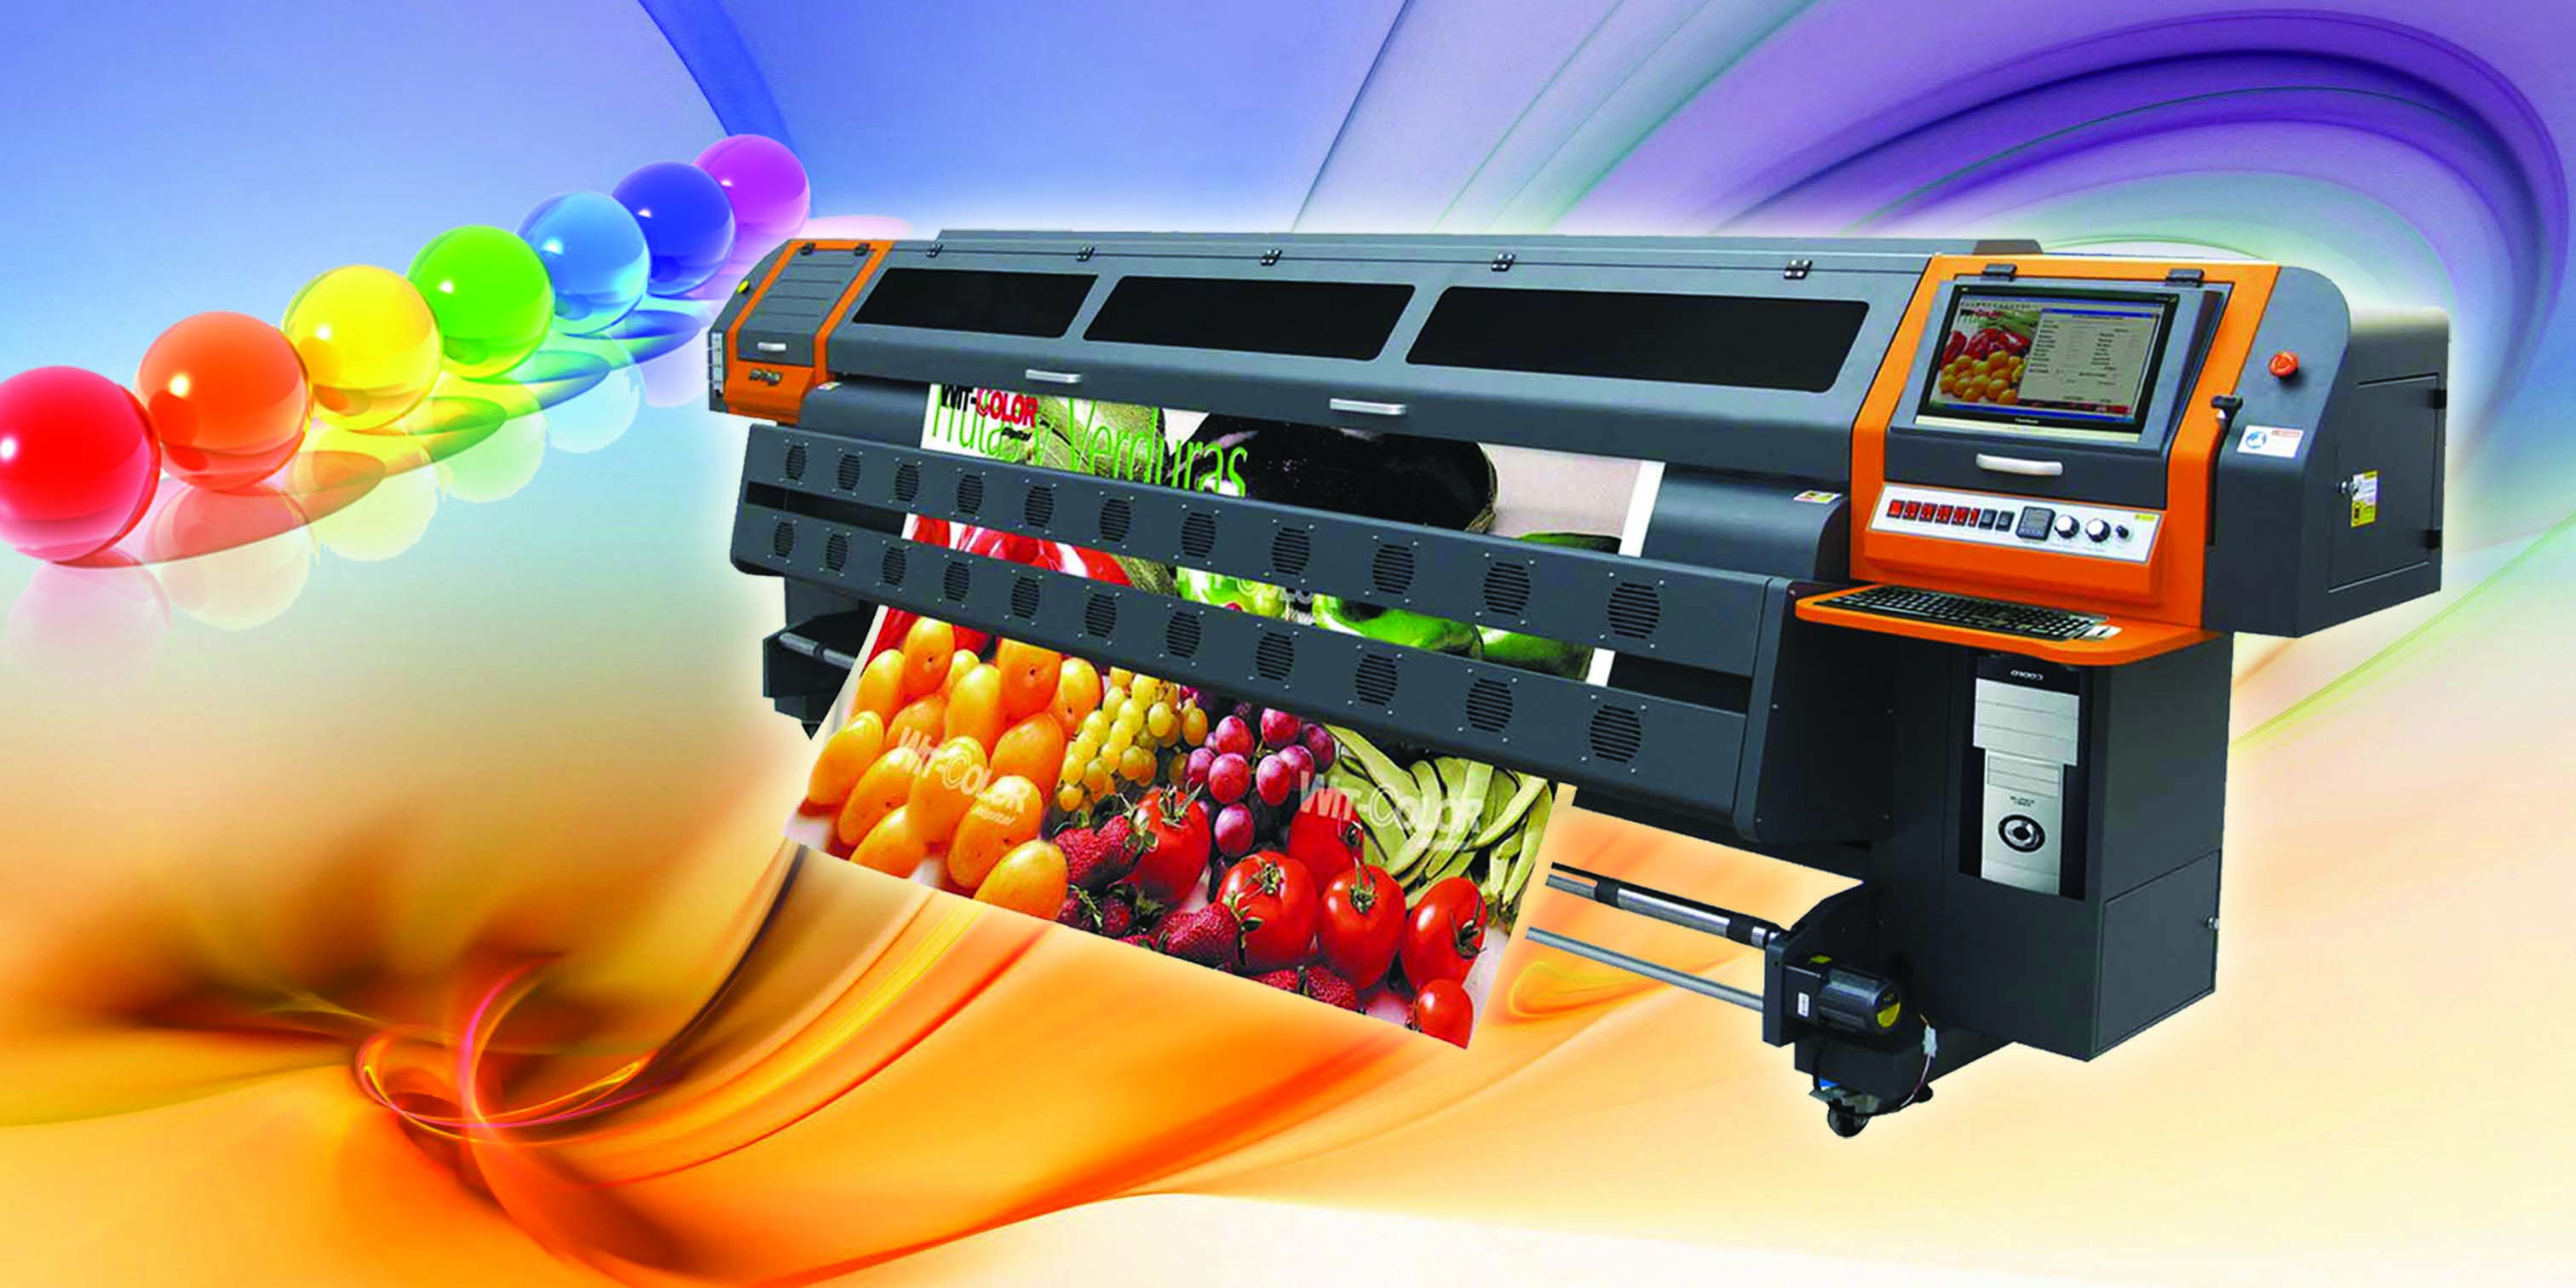 Digital Printing Is One Of The Best And Modern Ways Of